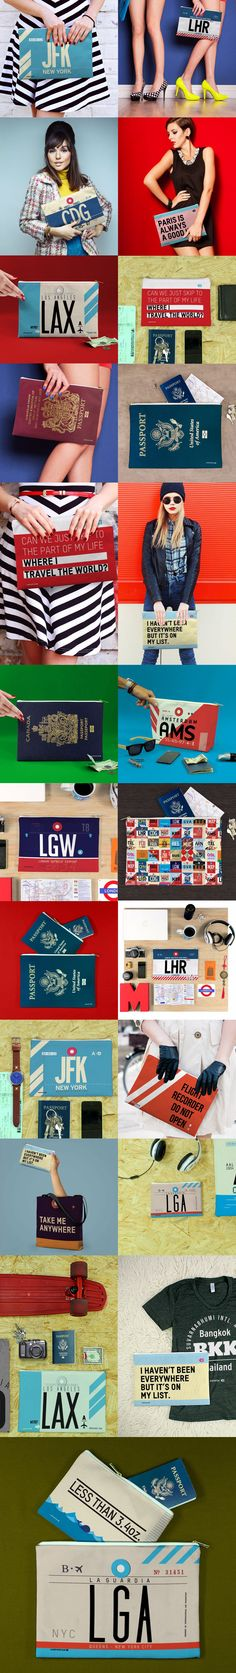 Travel inspired pouches - Travel quotes, airport codes...  #travel #airport #fashion